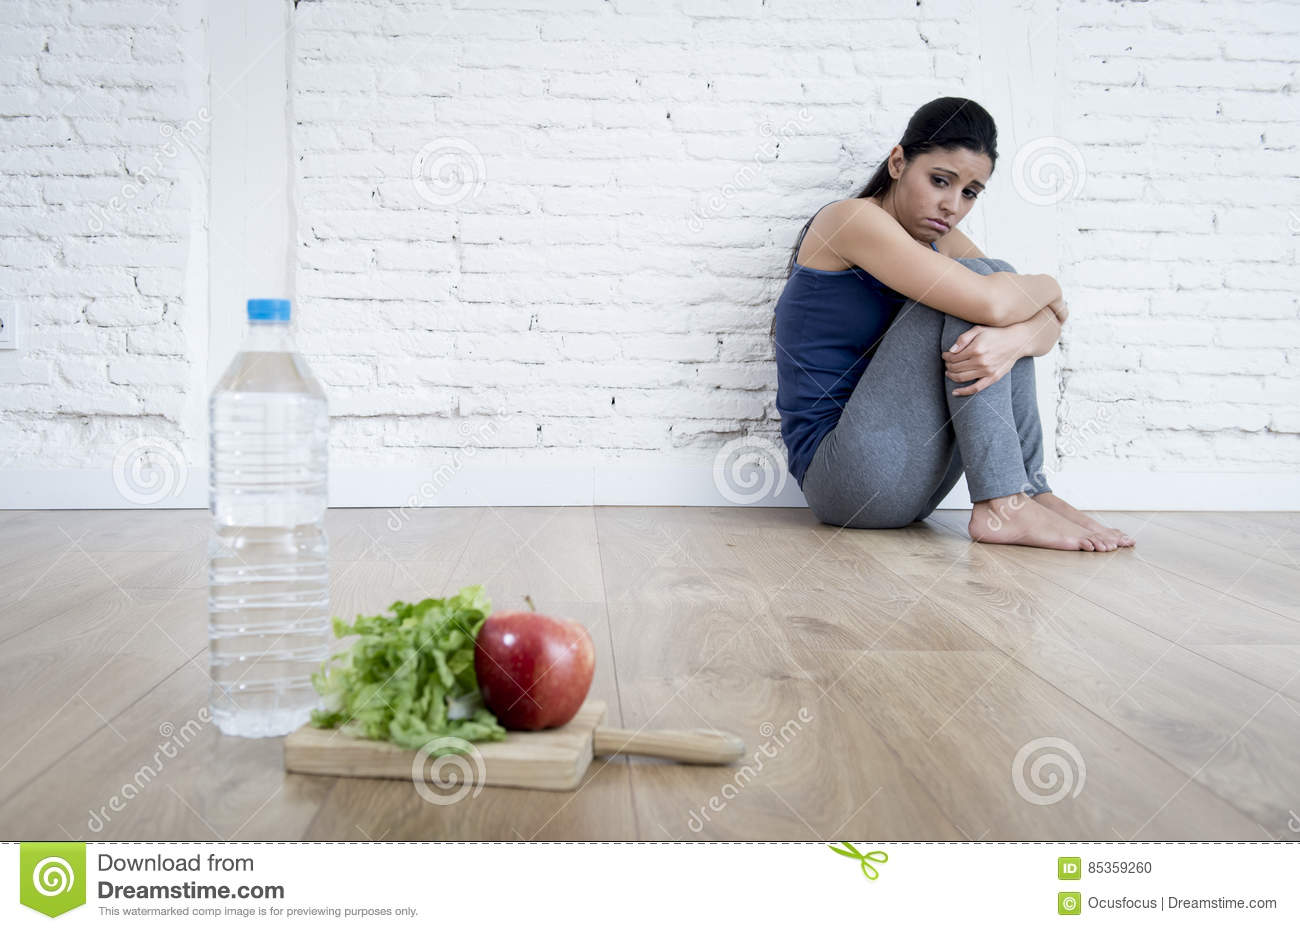 Dating girl with eating disorder